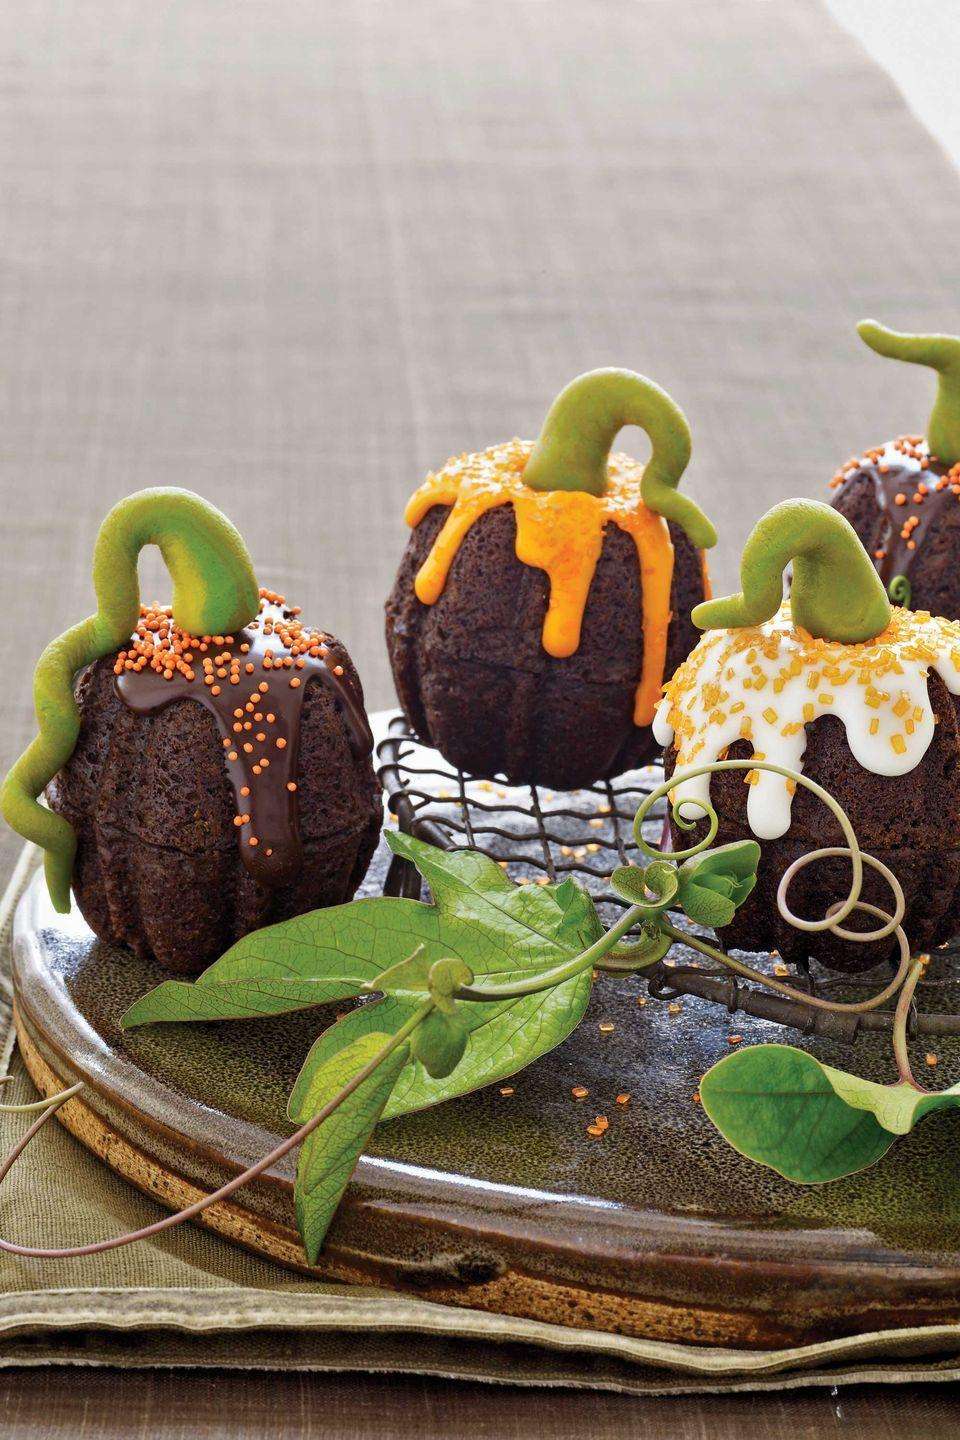 """<p>To make this luscious dessert, use our simple Classic Chocolate Cake recipe. You can also try substituting your favorite cake recipe, or if you're short on time, a boxed mix — one box yields 12 Mini Pumpkin Cakes, or two 8-inch-round layers. </p><p> To get the look of these single-serving pumpkin treats, trim the bottoms of cakes baked in mini Bundt pans to create a flat surface. Join two cakes so that the fluted tops are at either end, then drizzle with chocolate or vanilla glaze and sprinkle with coarse colored sugar or nonpareils before the glaze sets. Top with a marzipan stem. Read the marzipan instructions at <a href=""""https://www.countryliving.com/food-drinks/g617/marzipan-pumpkin-stems-1008/"""" rel=""""nofollow noopener"""" target=""""_blank"""" data-ylk=""""slk:Marzipan Pumpkin Stems"""" class=""""link rapid-noclick-resp"""">Marzipan Pumpkin Stems</a>.</p><p><strong><a href=""""https://www.countryliving.com/food-drinks/recipes/a2422/classic-chocolate-cake/"""" rel=""""nofollow noopener"""" target=""""_blank"""" data-ylk=""""slk:Get chocolate cake recipe"""" class=""""link rapid-noclick-resp"""">Get chocolate cake recipe</a>.</strong></p><p><a class=""""link rapid-noclick-resp"""" href=""""https://www.amazon.com/Wilton-2105-445-Mini-Fluted-Small/dp/B0000DIX7S?tag=syn-yahoo-20&ascsubtag=%5Bartid%7C10050.g.1366%5Bsrc%7Cyahoo-us"""" rel=""""nofollow noopener"""" target=""""_blank"""" data-ylk=""""slk:SHOP MINI BUNDT PANS"""">SHOP MINI BUNDT PANS </a></p>"""